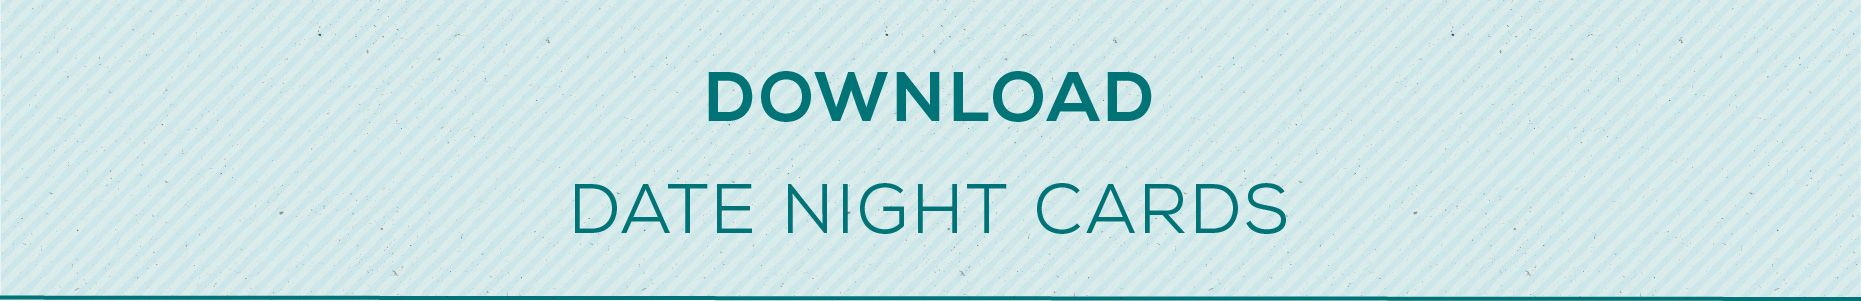 download date night cards